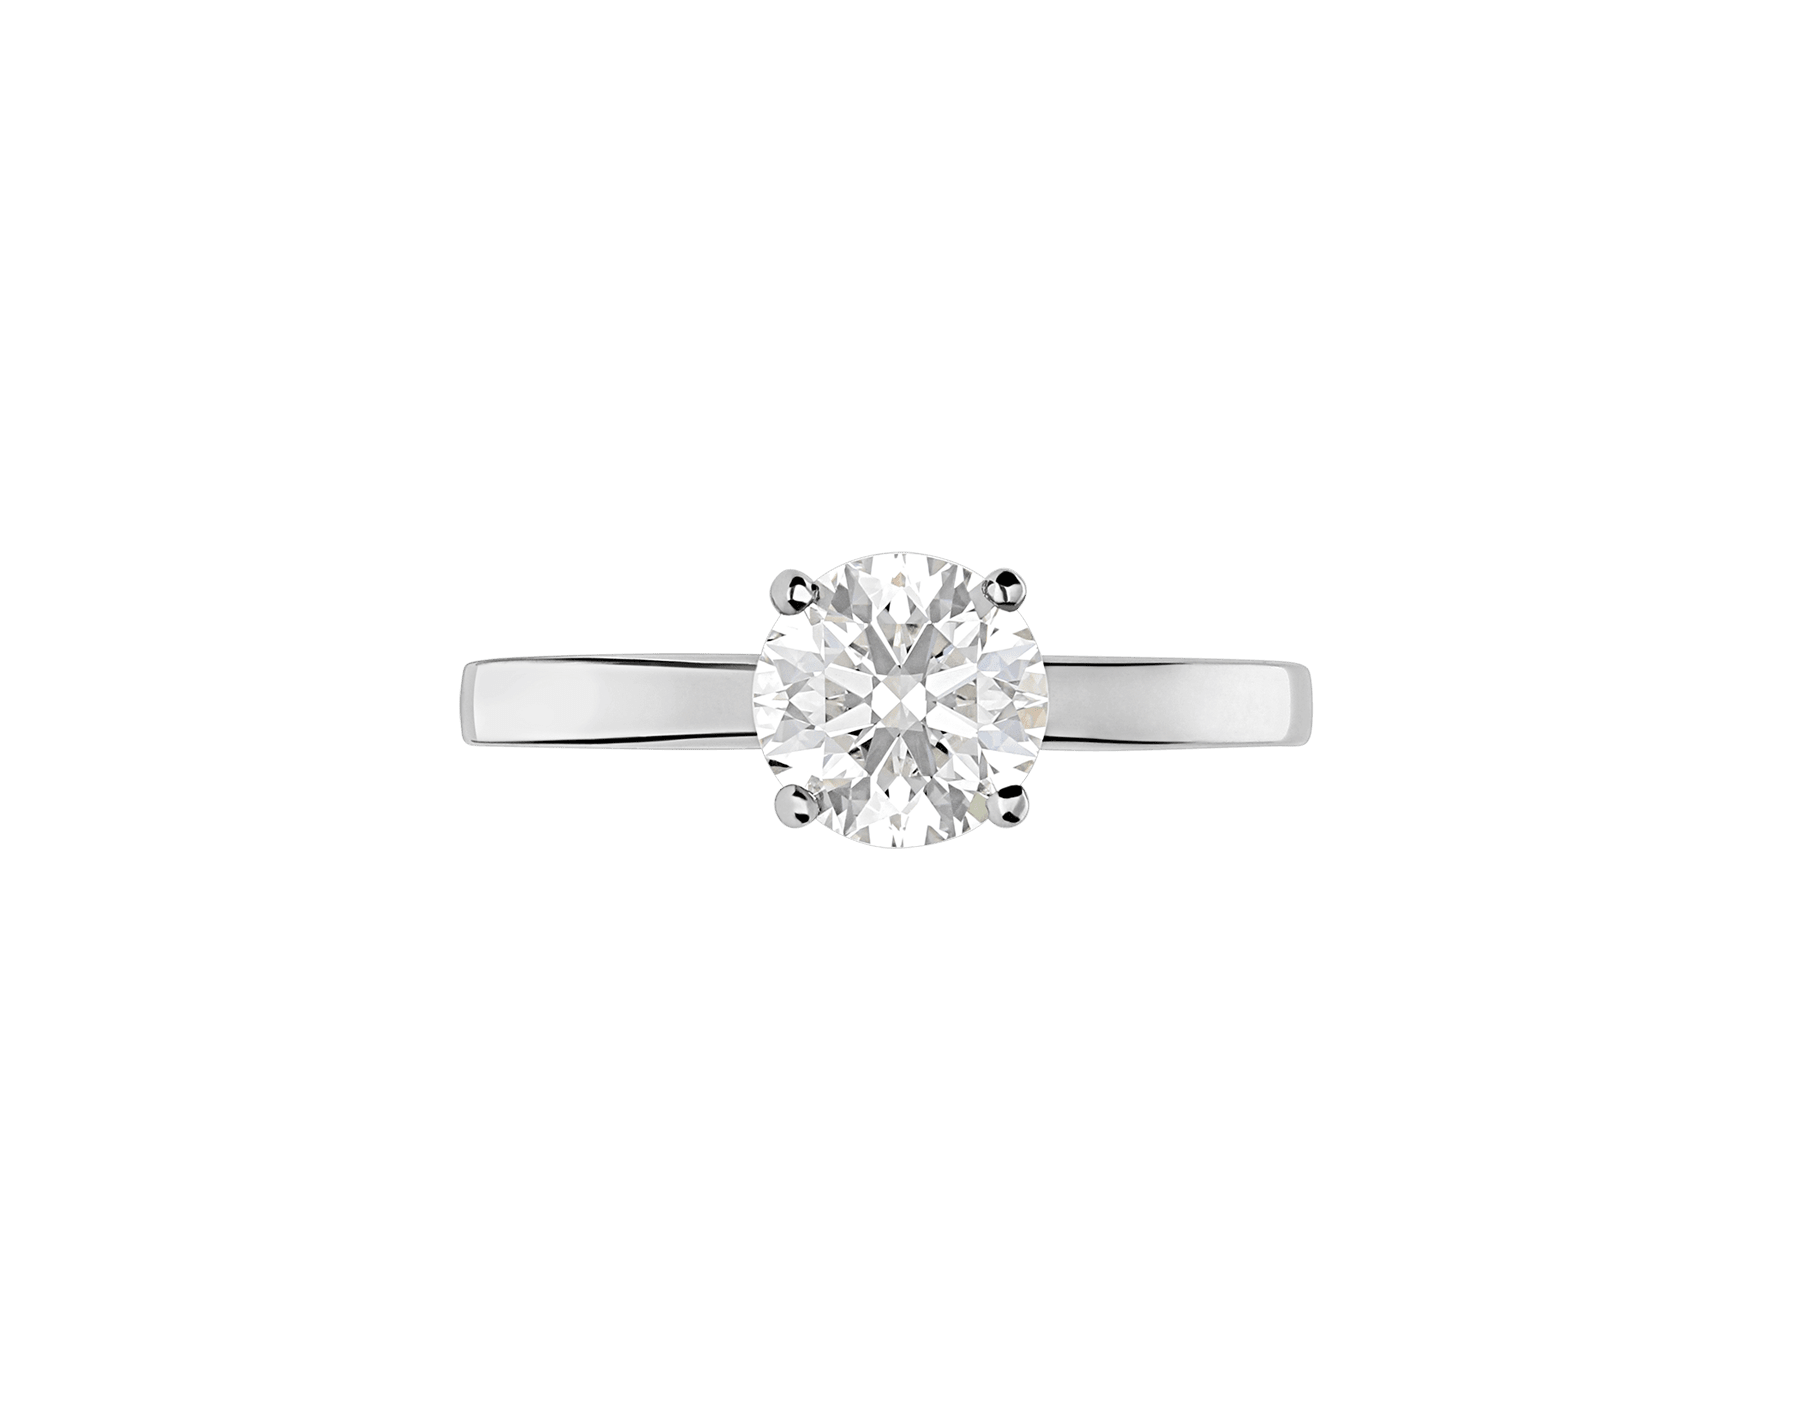 Griffe ring in platinum with round brilliant cut diamond. Available from 0.30 ct. 327827 image 2